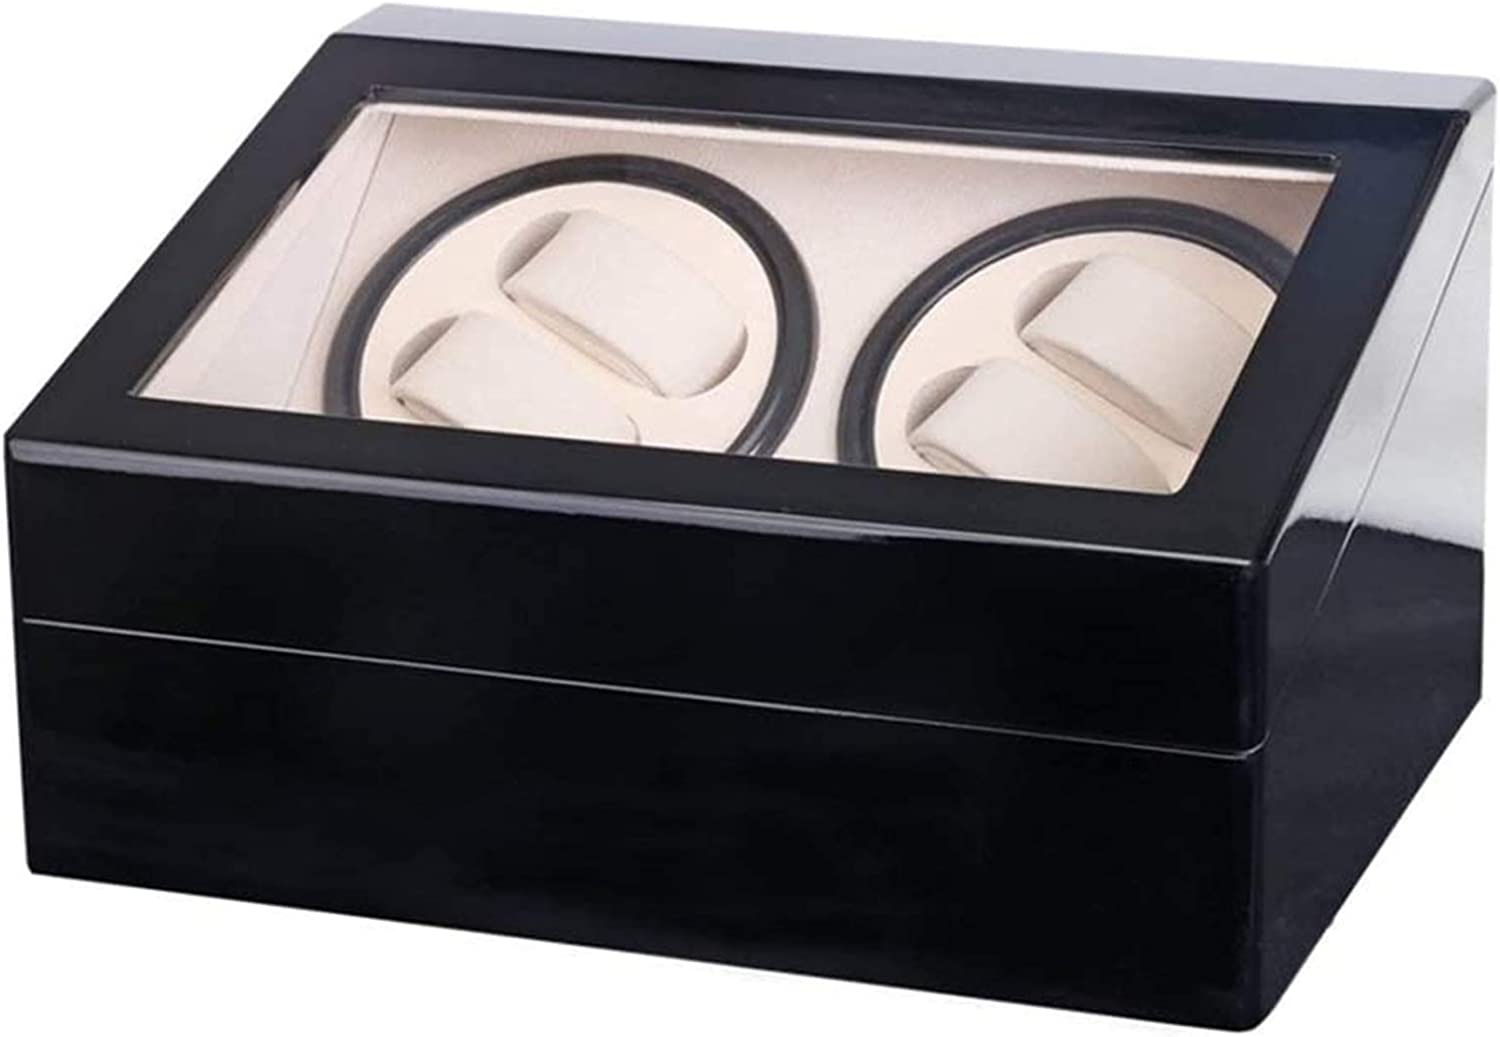 excellence HighEnd Boutique Meter Shaker 4+6 Black Winder Luxury Sales results No. 1 Auto Watch